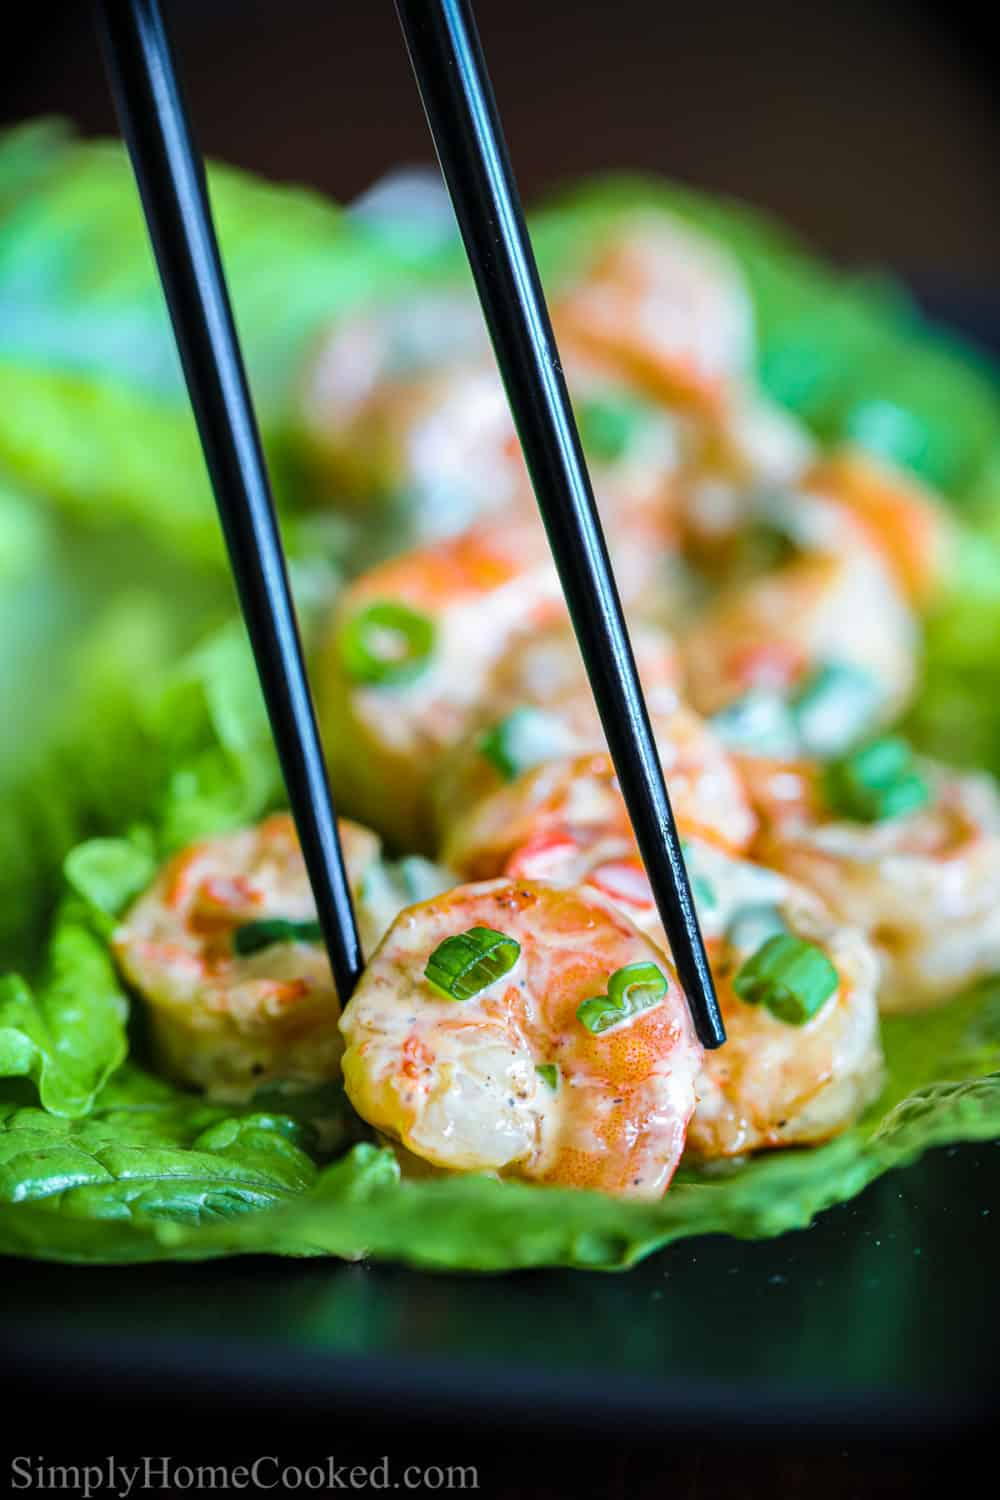 close up image of grilled bang bang shrimp on a bed of lettuce leaves with black chop sticks